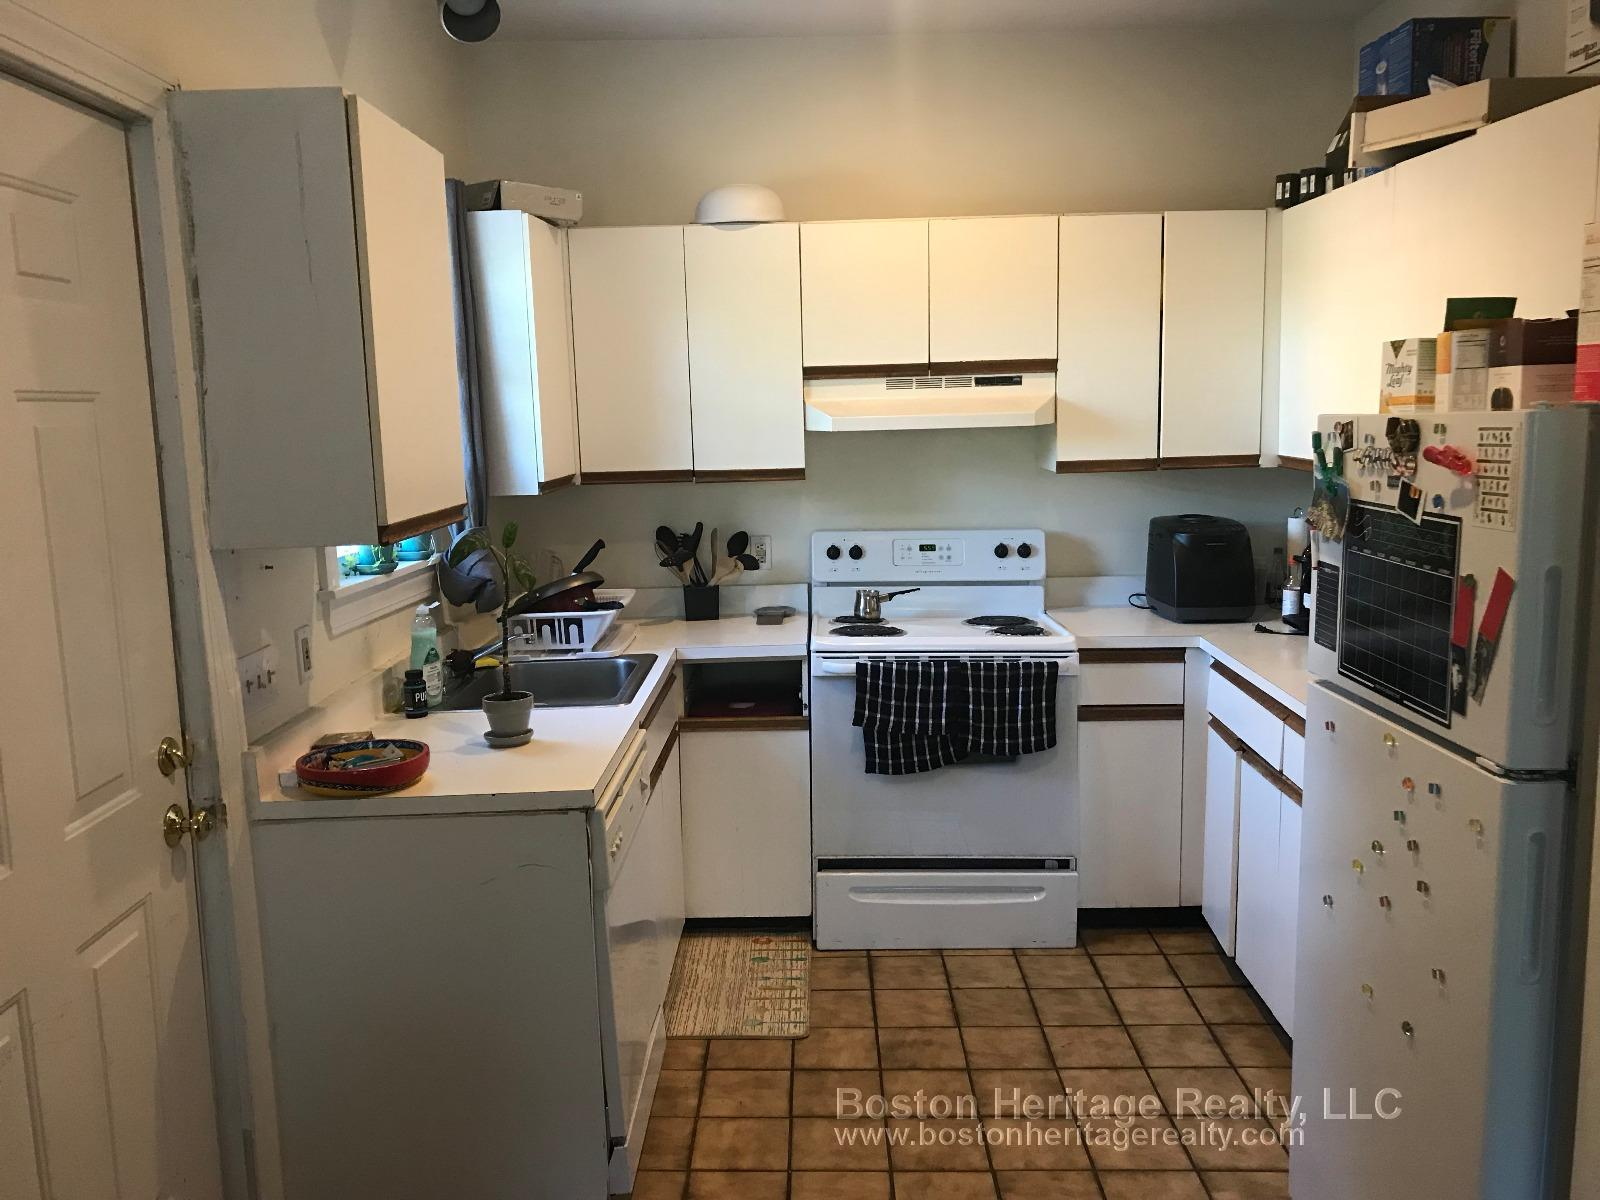 1 Bed, 1 Bath apartment in Boston, Mission Hill for $1,700